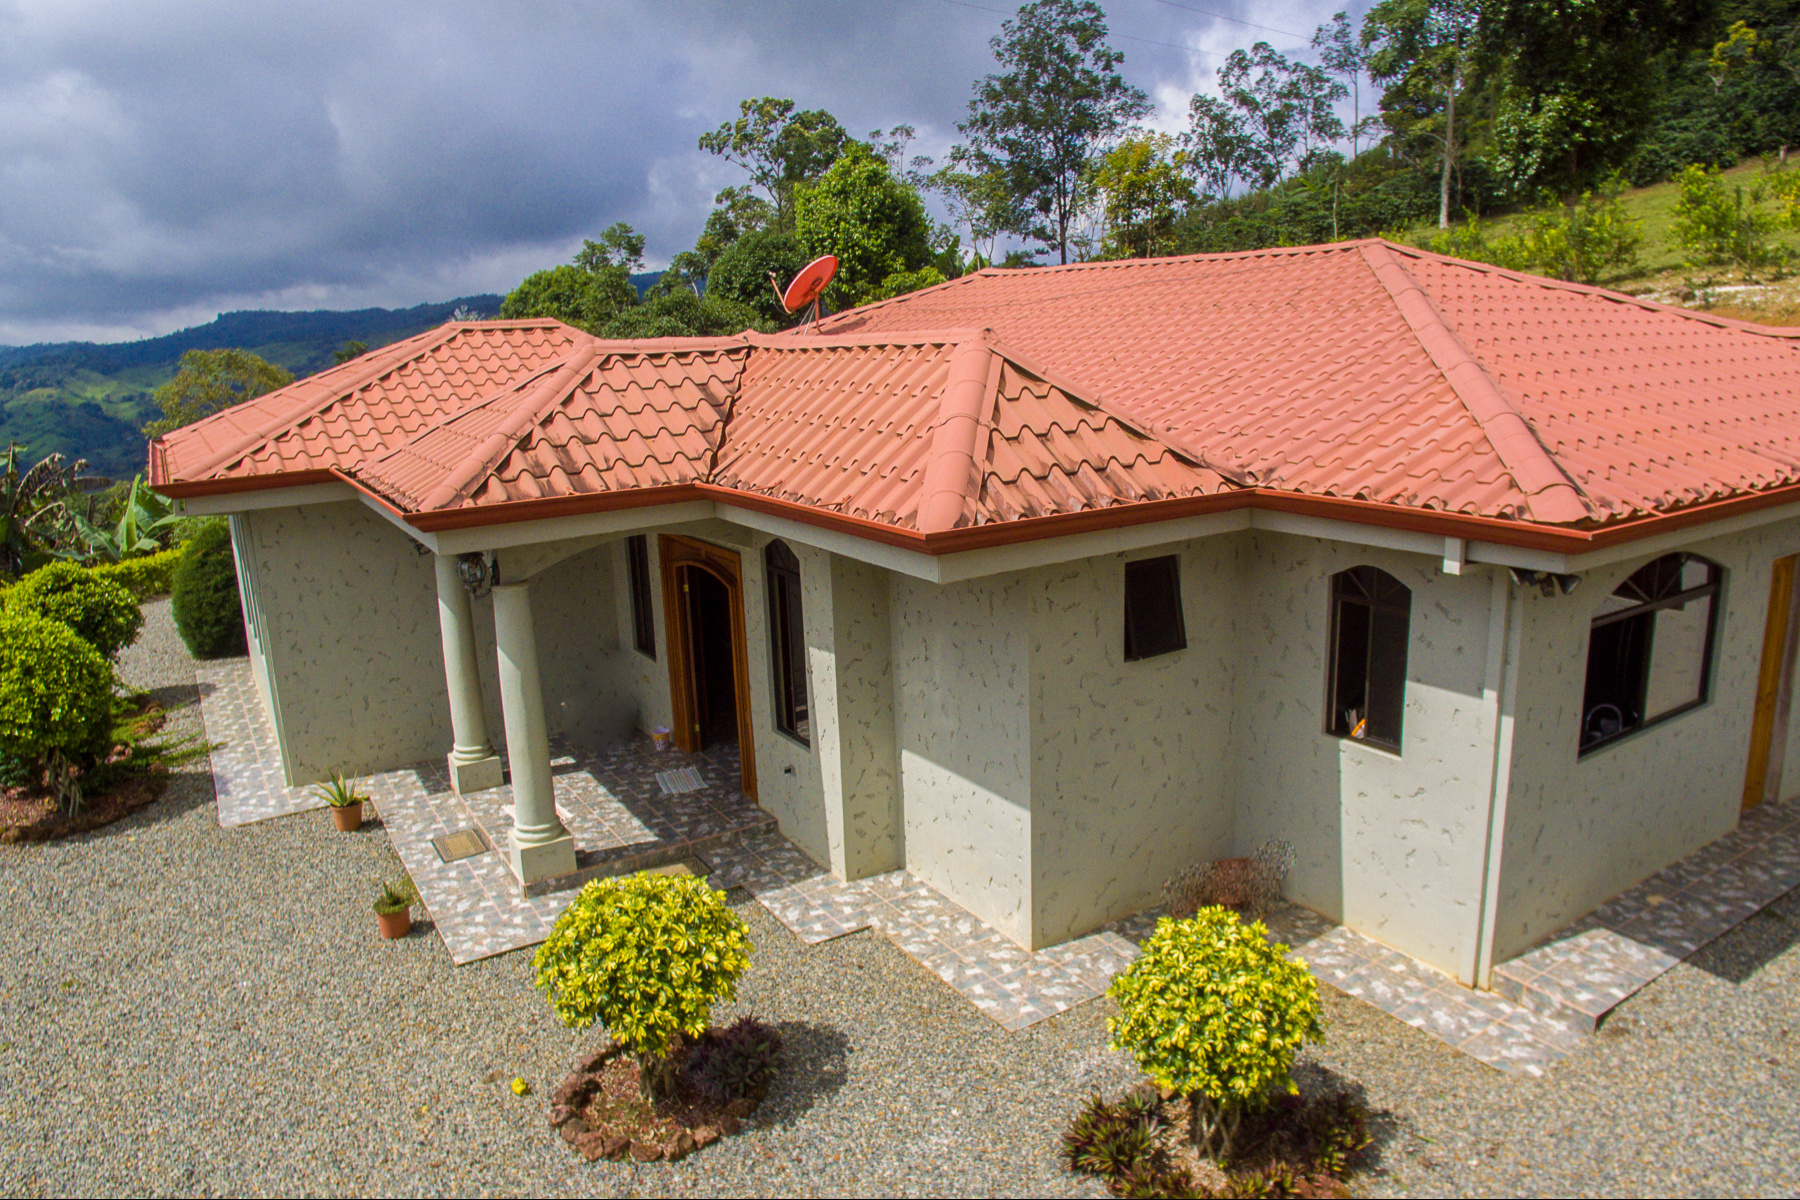 Single Family Homes for Sale at Fruitful Home, Perez Zeledón Other San Jose, San Jose Costa Rica